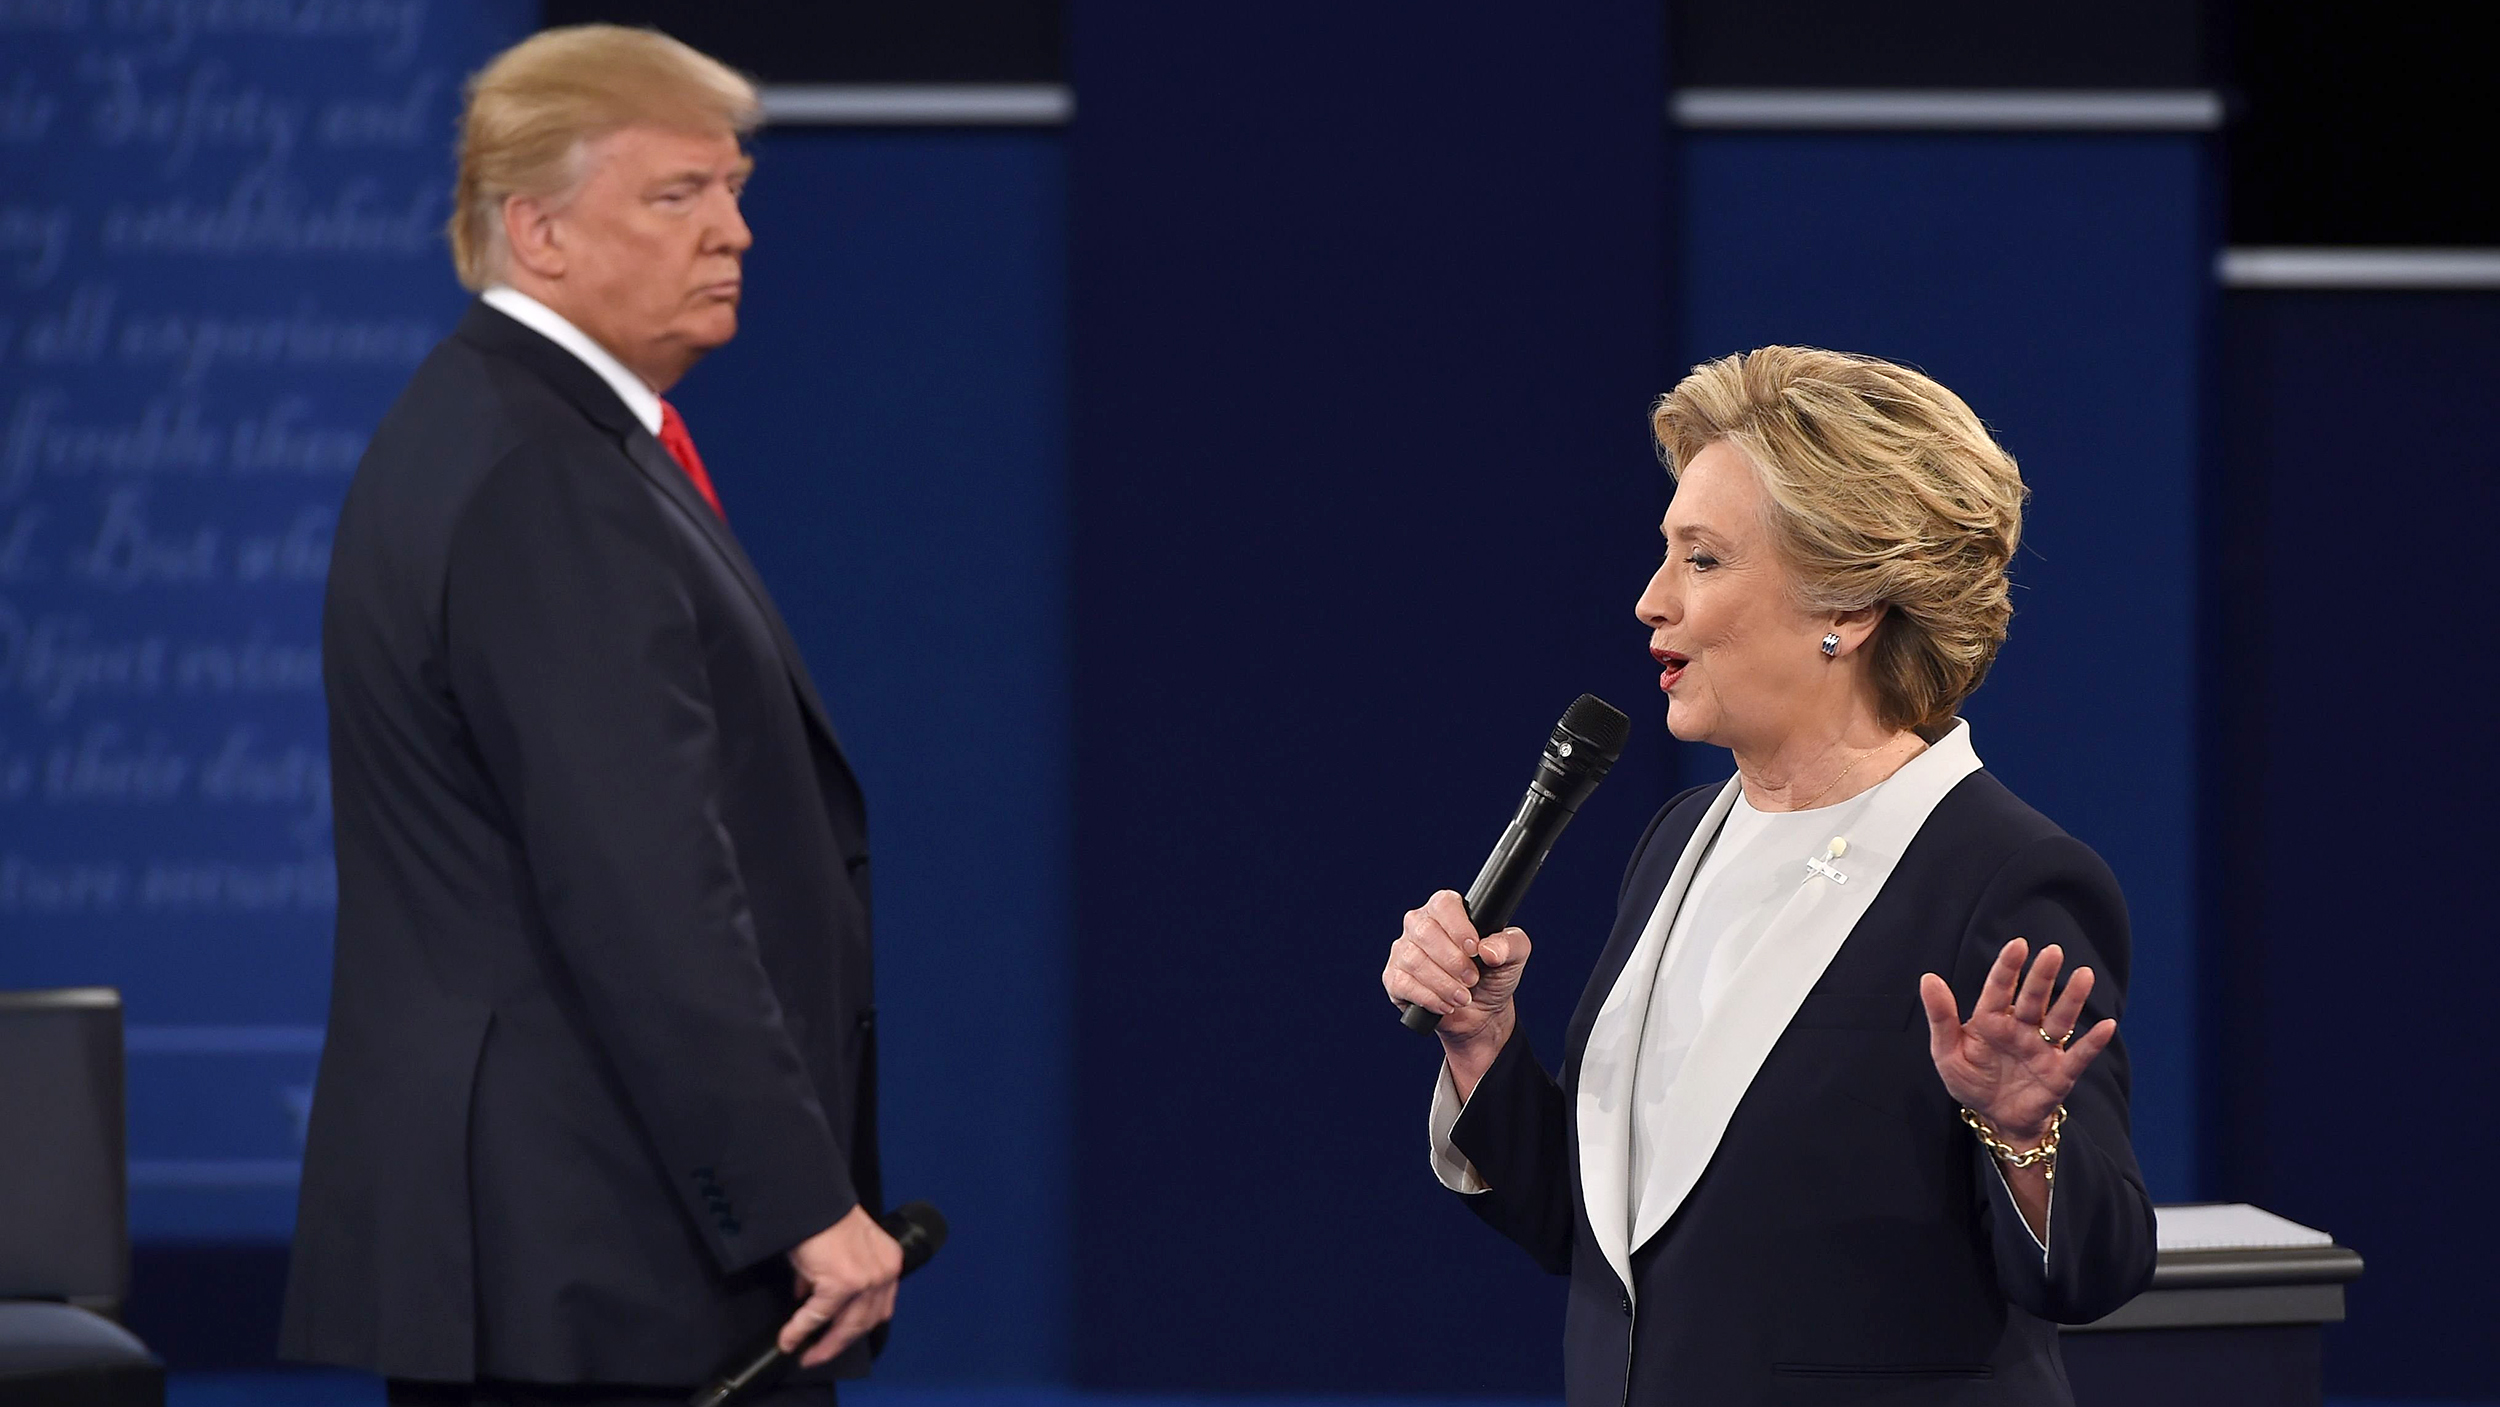 Donald Trump Vs Hillary Clinton Second Presidential